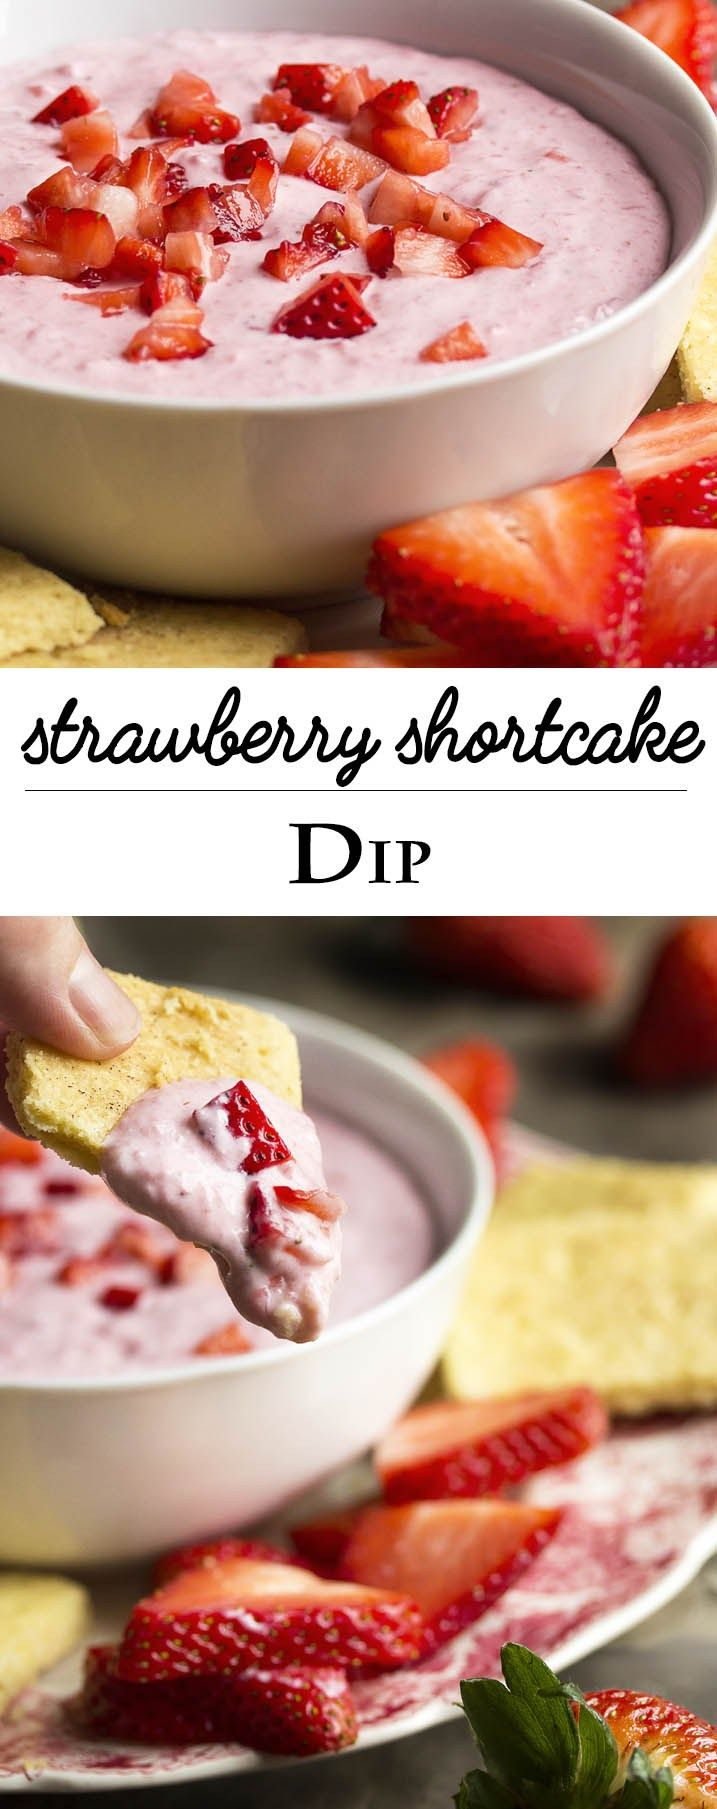 Strawberry Shortcake Dip - All the fun and yummy flavors of strawberry shortcake are in this quick and easy crowd-pleasing strawberry shortcake dip. Great with graham crackers, strawberry slices, and shortbread cookies. | justalittlebitofbacon.com